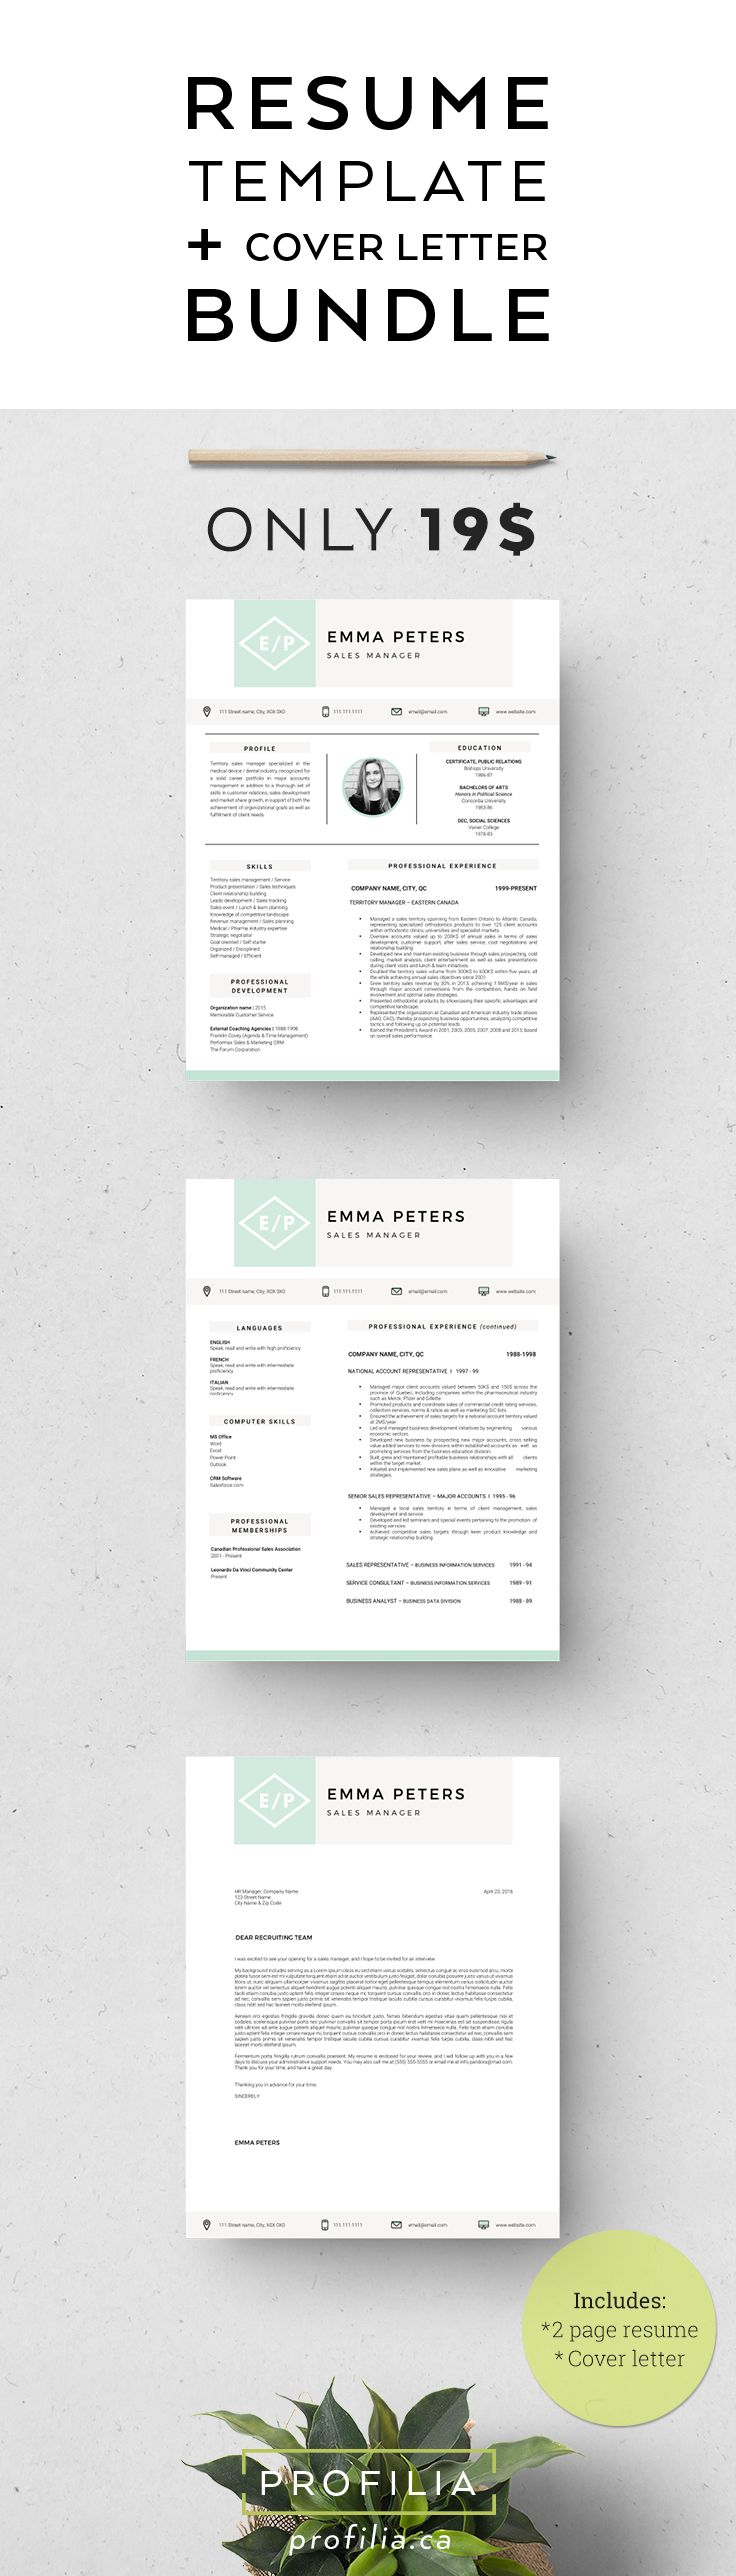 Modern Resume U0026 Cover Letter Template. 3 Page Bundle With Fonts ...  Professional Cover Letter Template